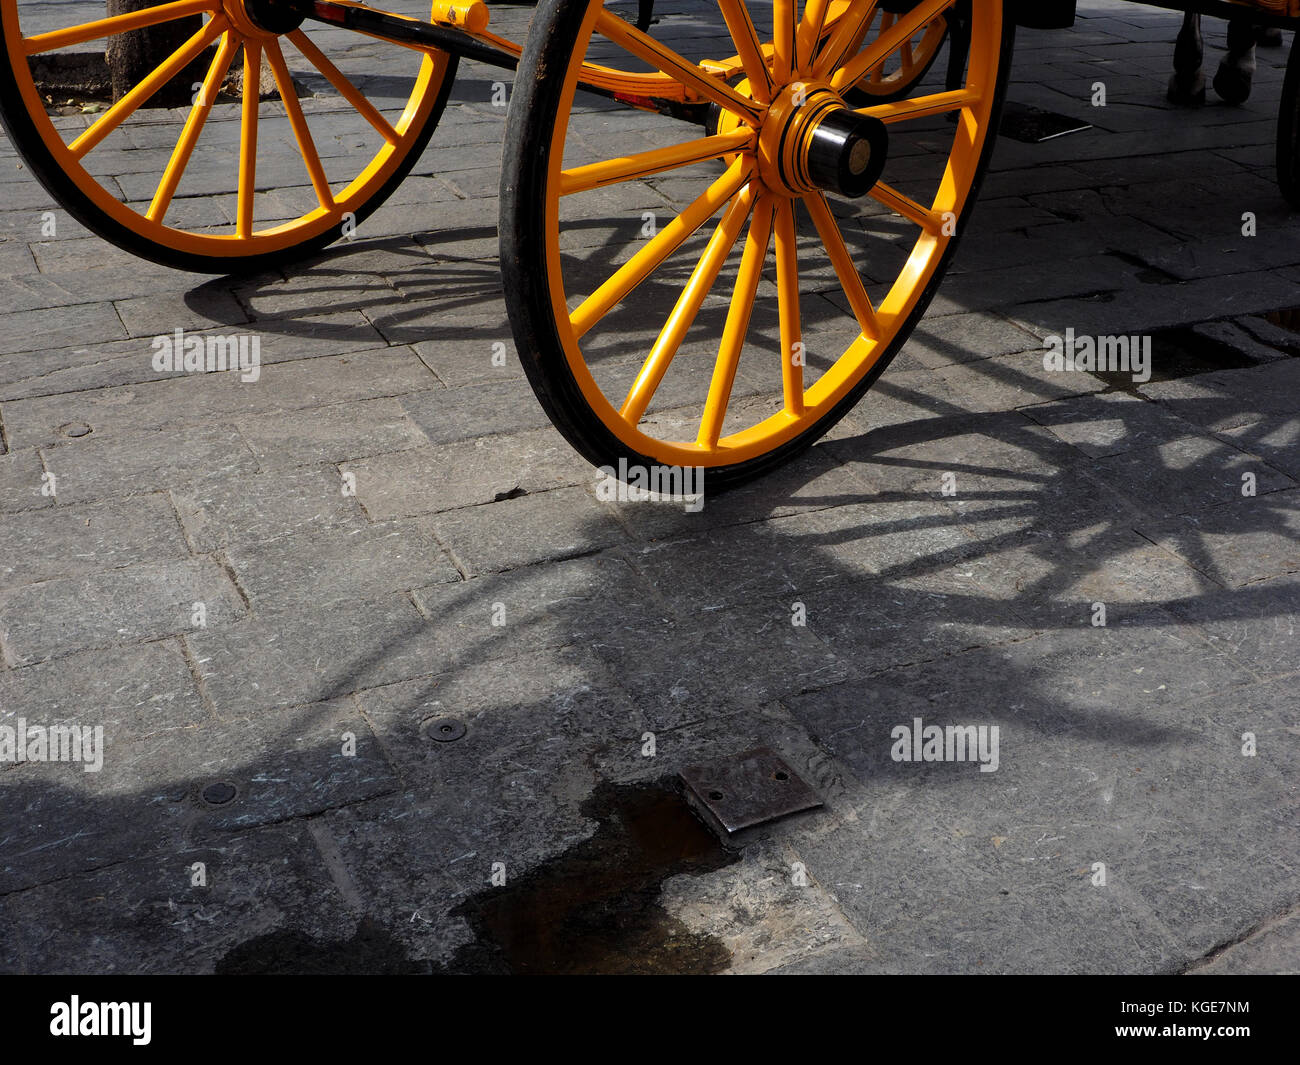 shadow of horse's head and reins merge with shadow of yellow spoked carriage wheels at a carriage taxi rank - Stock Image